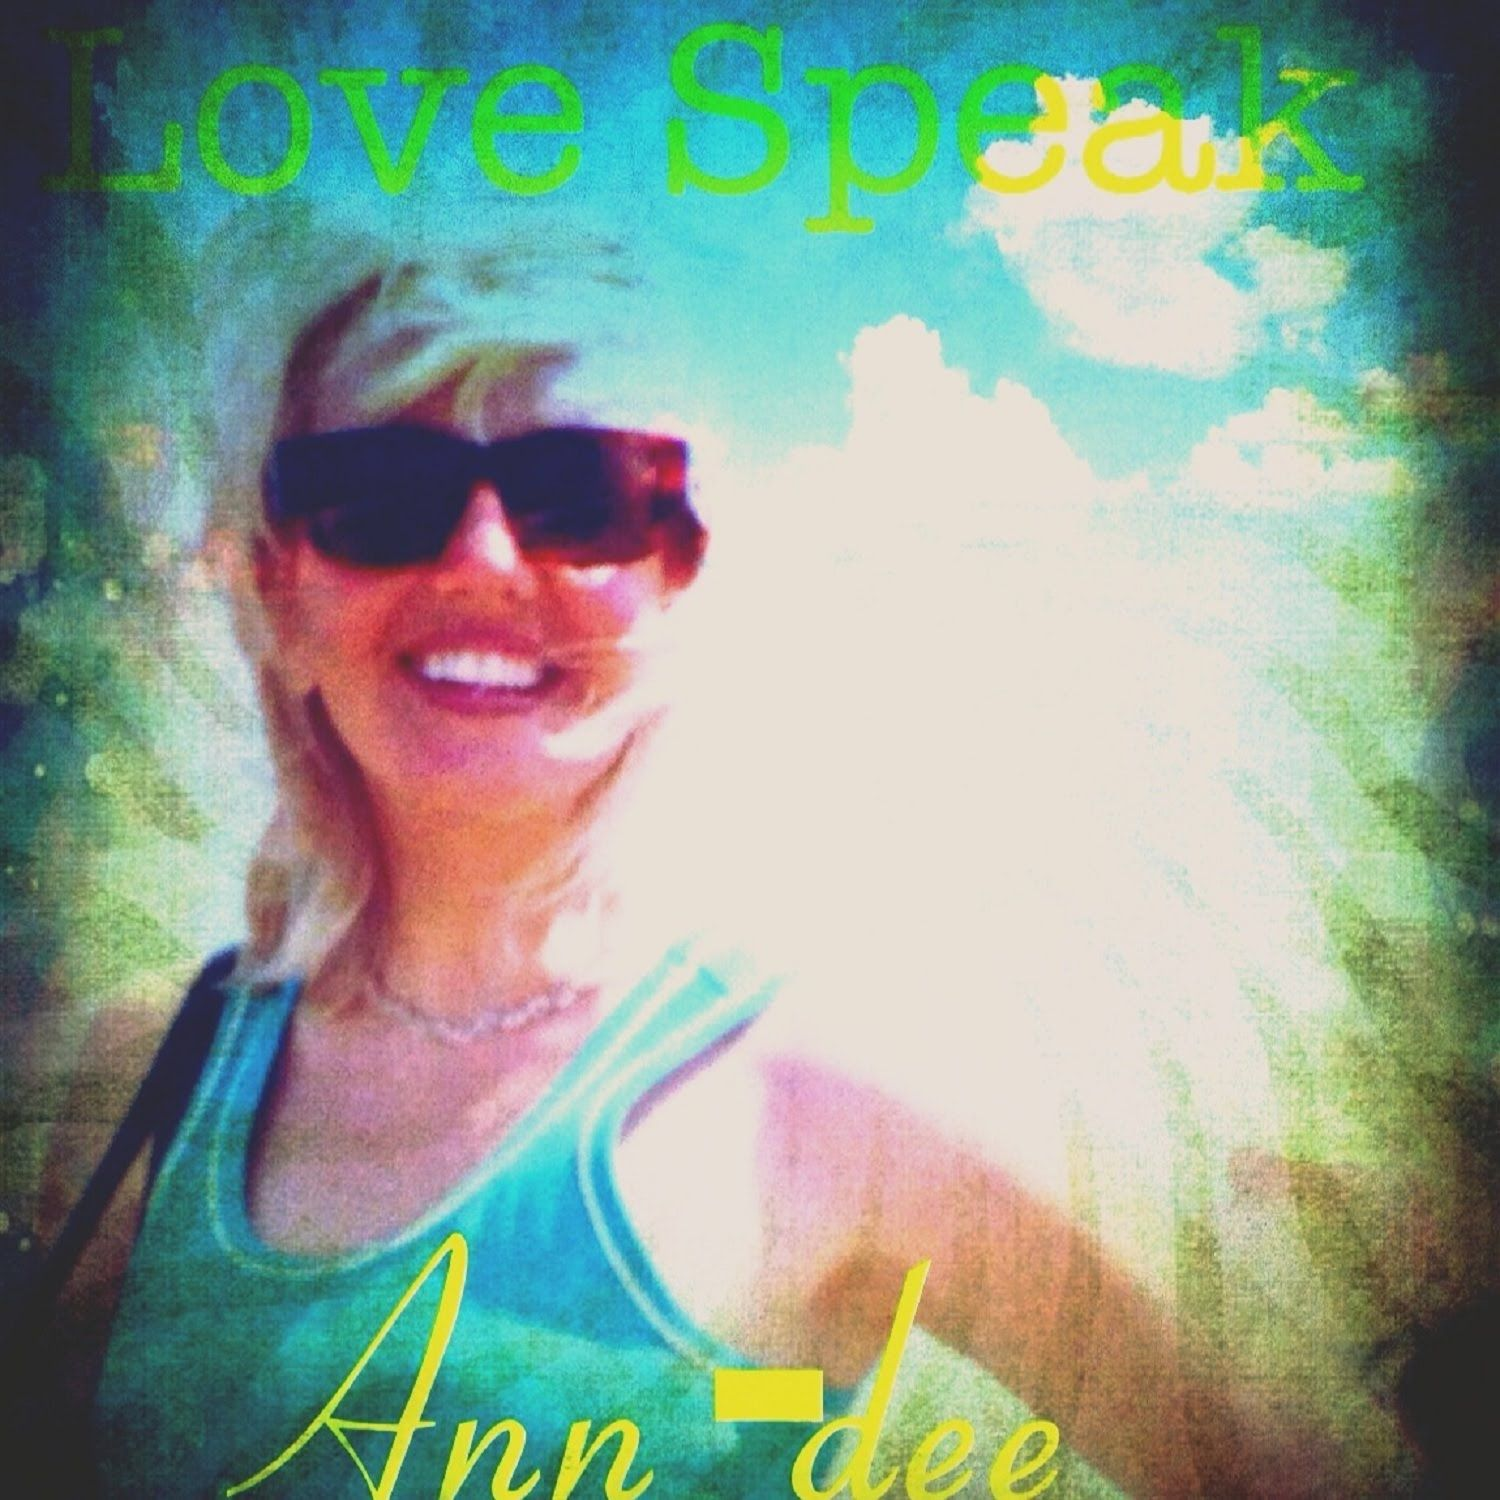 Love Speak trailer (With images) Sunglasses women, Heart